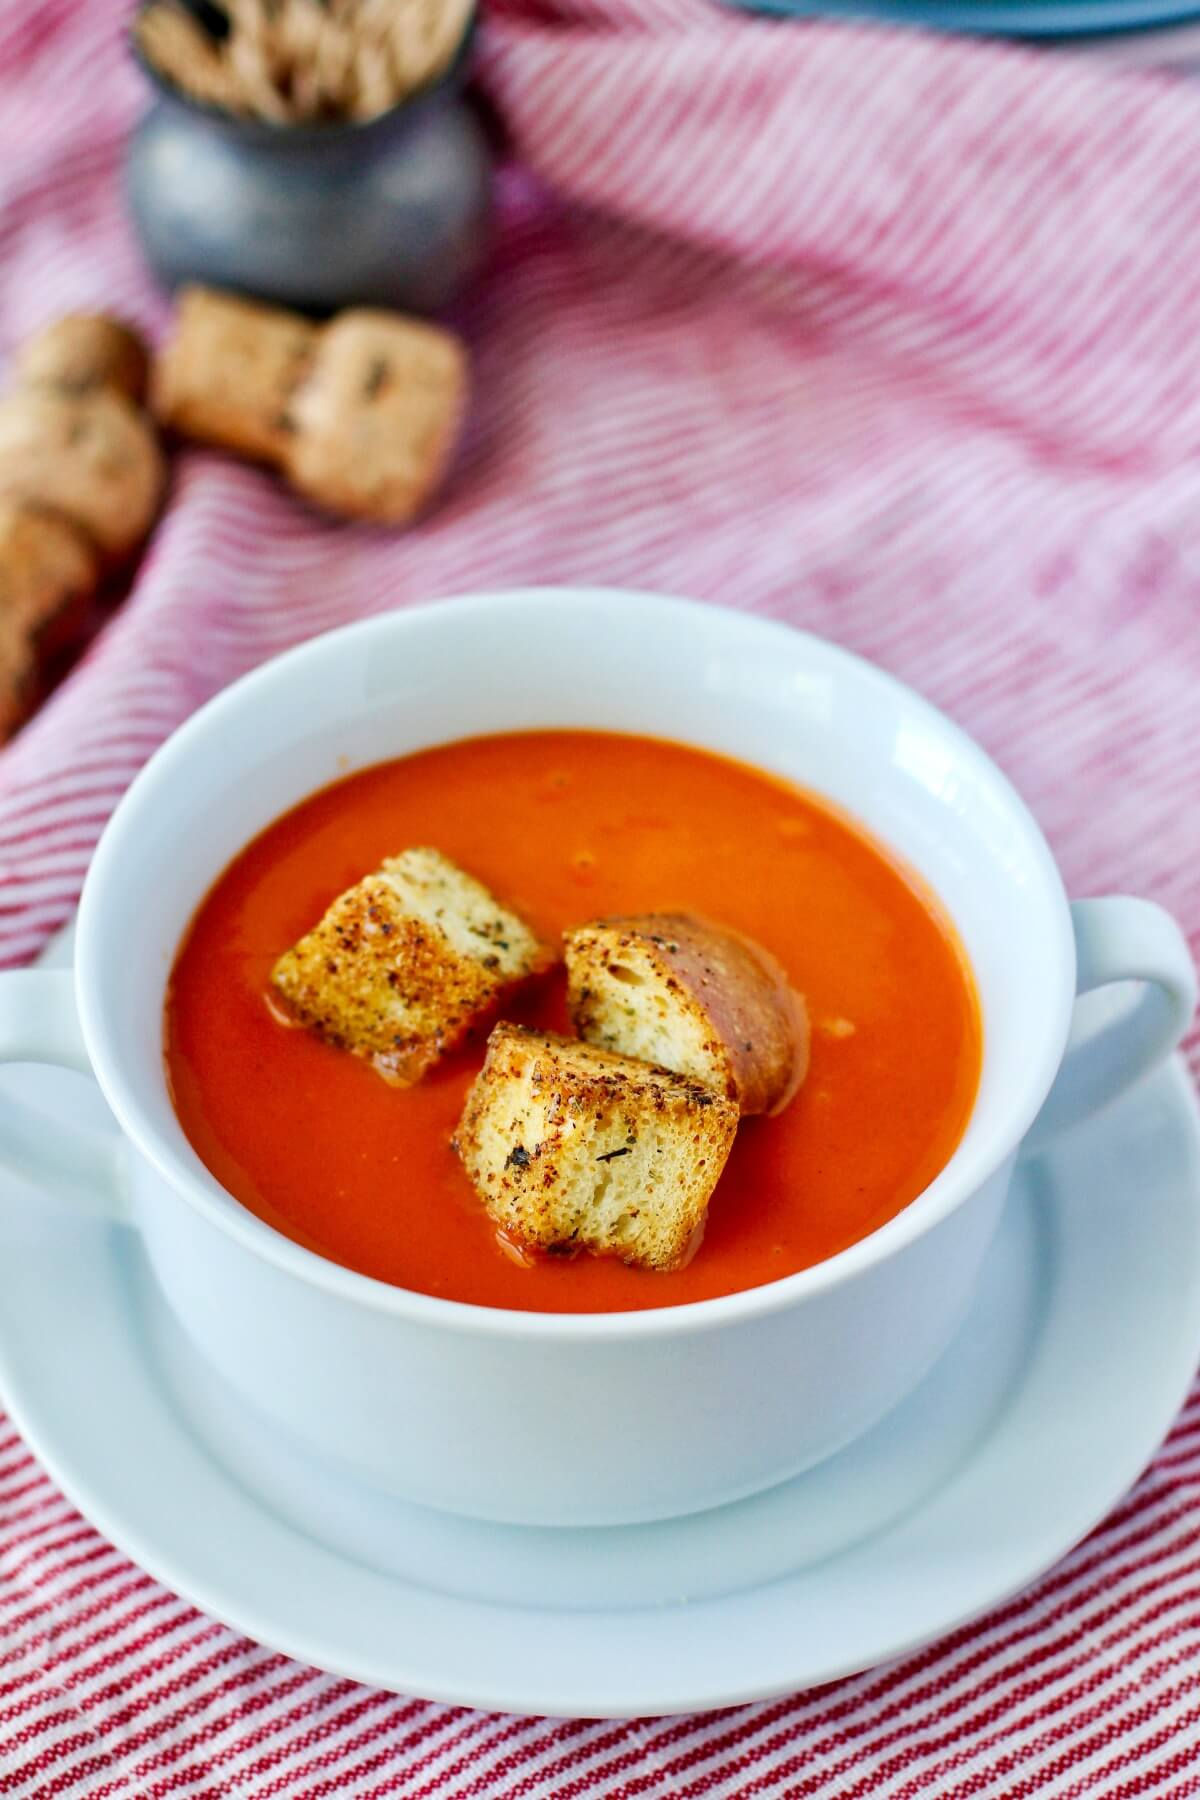 Roasted Tomato and Pepper Soup with croutons